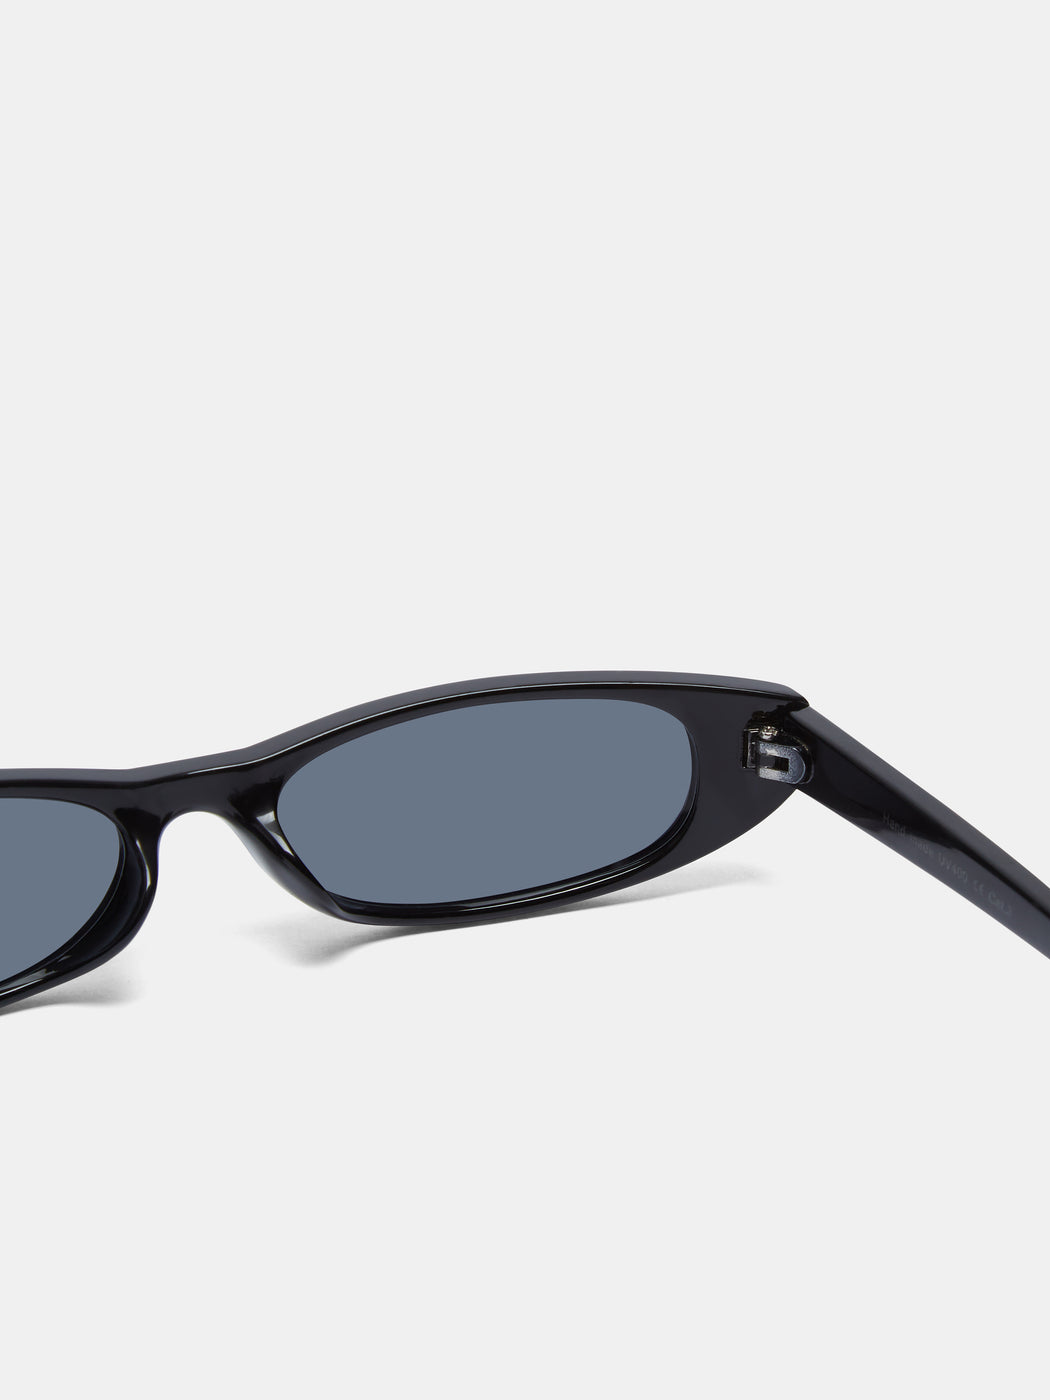 Black Narrow-S Sunglasses